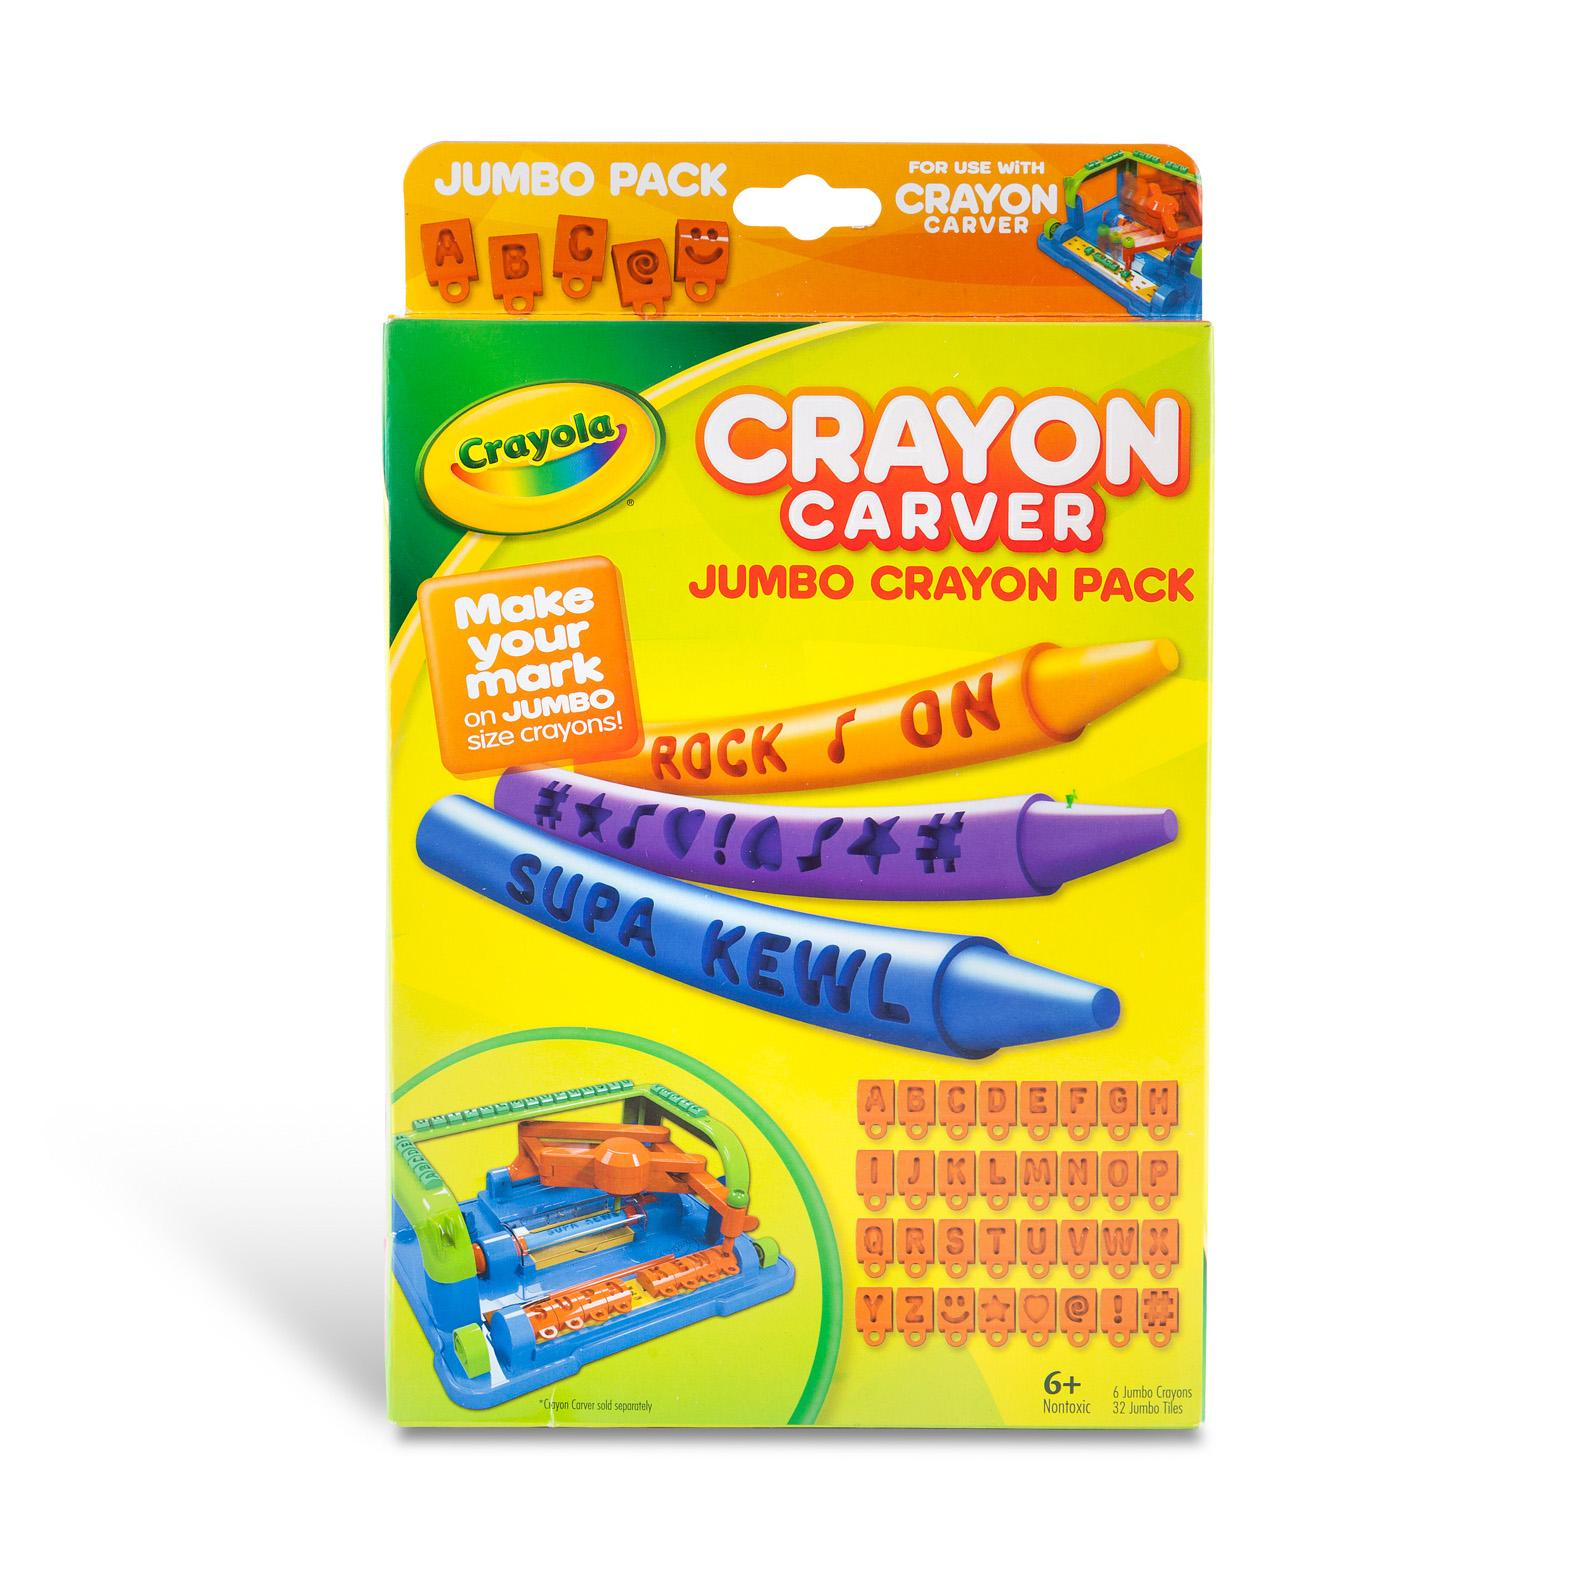 Amazon.com: Crayola Crayon Carver, Jumbo Expansion Pack: Toys & Games